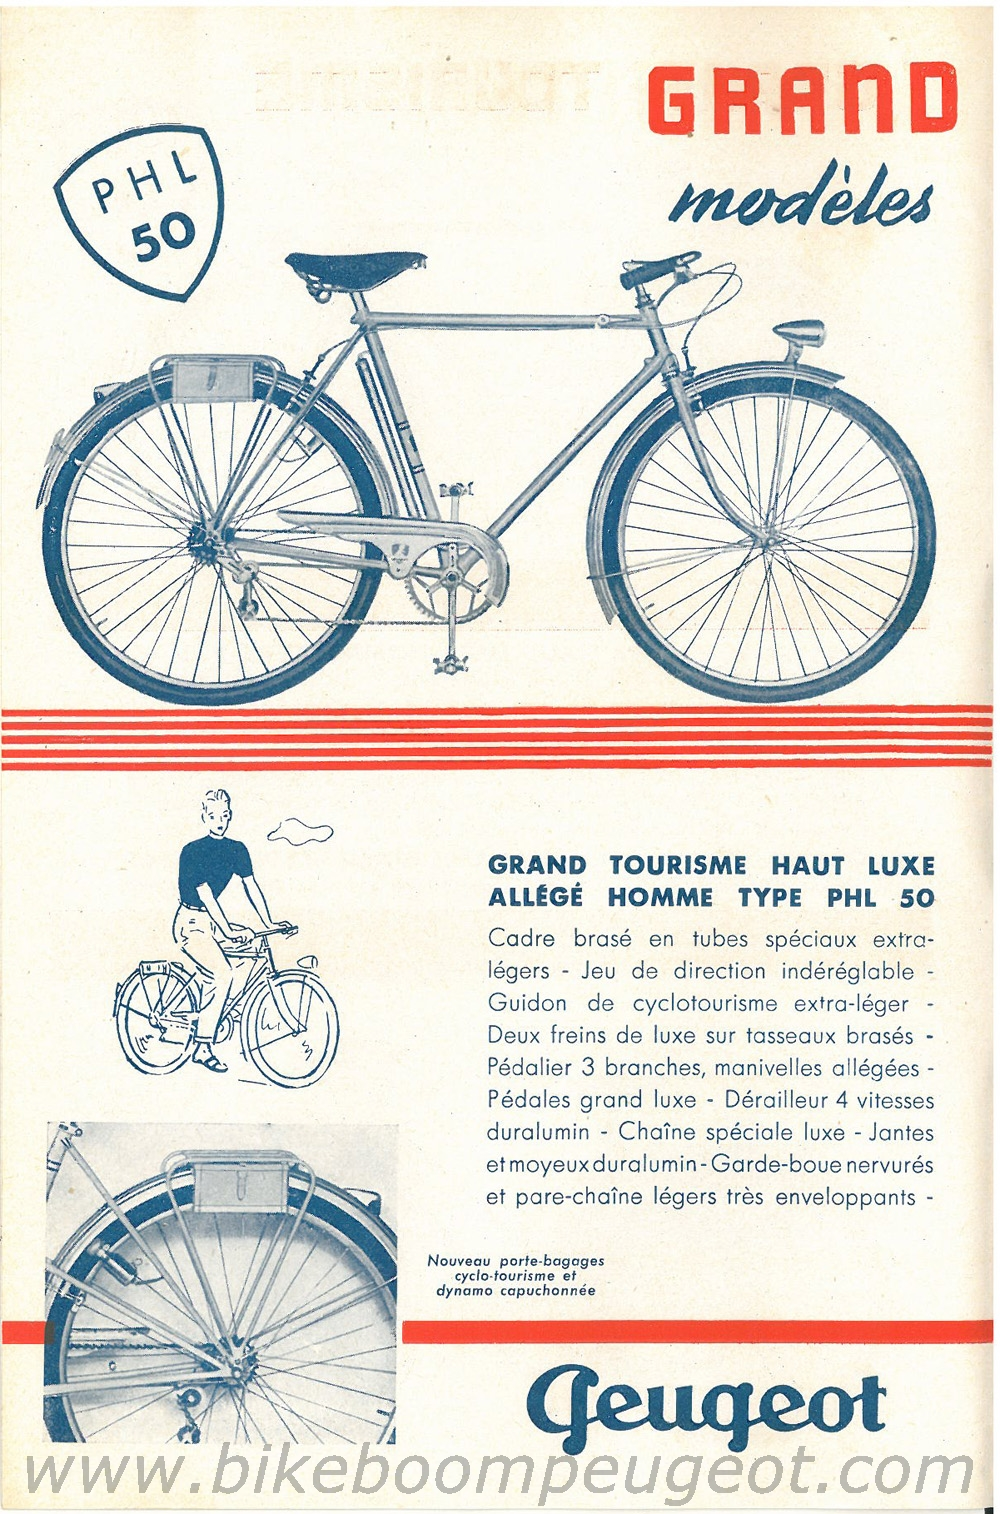 1947 Peugeot Bicycle Catalogue | Restoring Vintage Bicycles from the